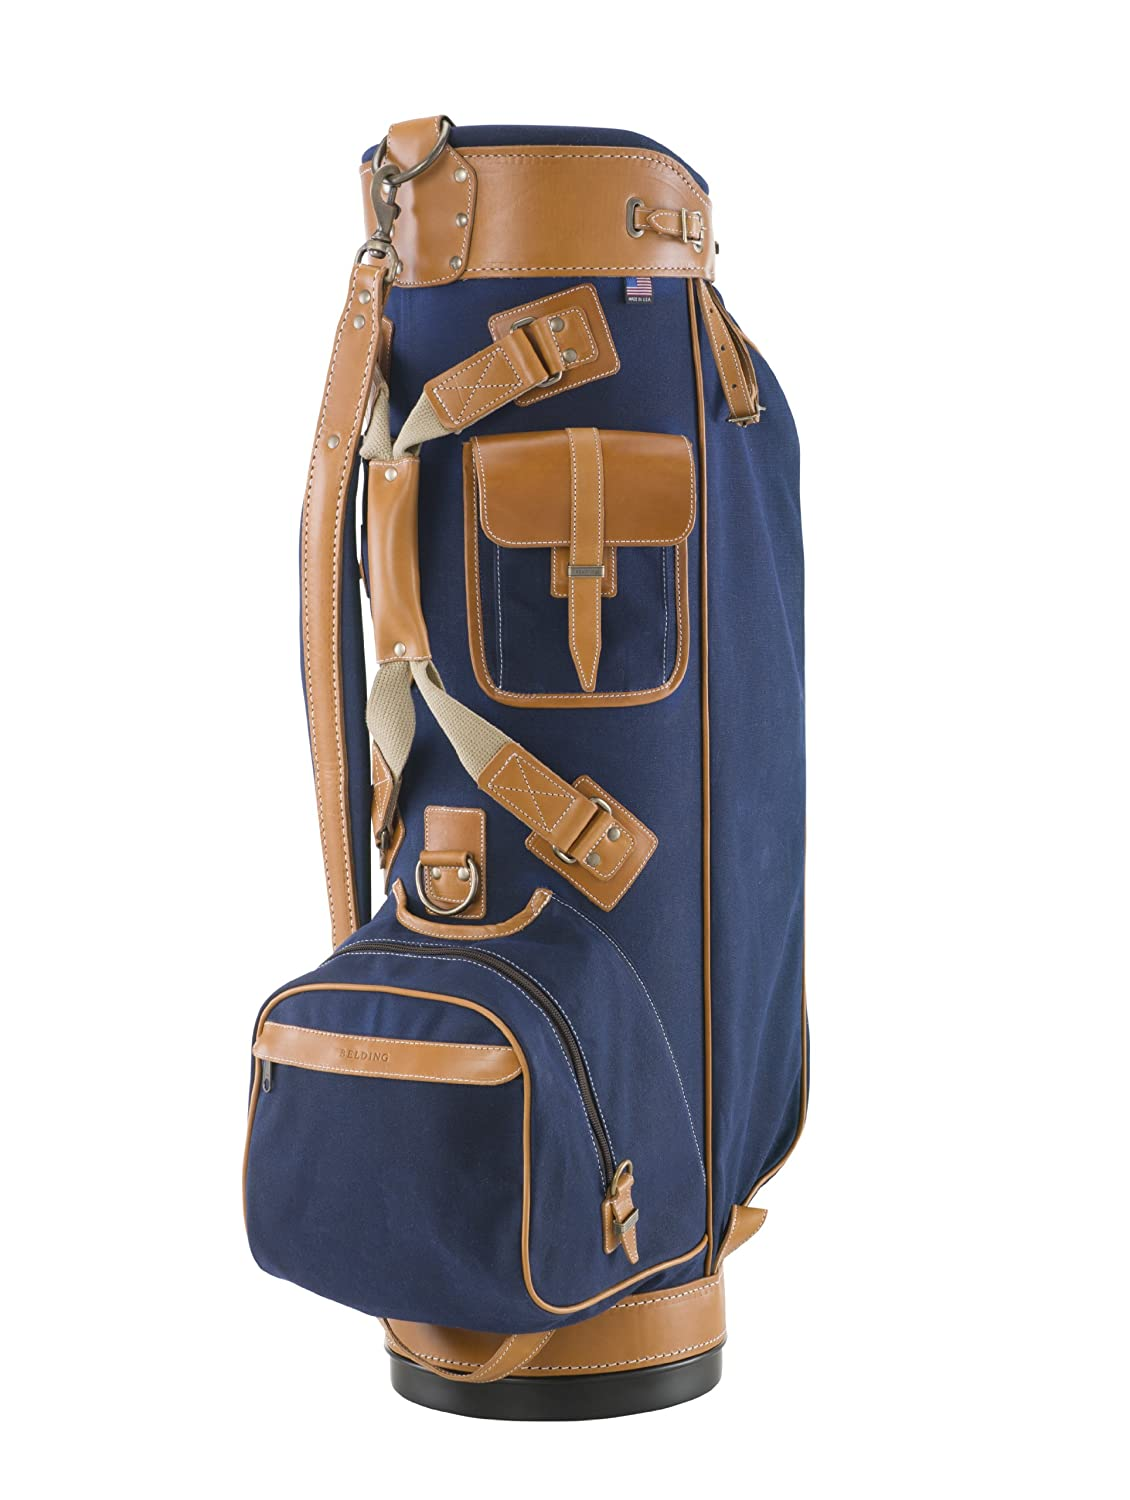 BELDING American Collection Bushwhacker Golf Bag, 9.5-Inch, Navy